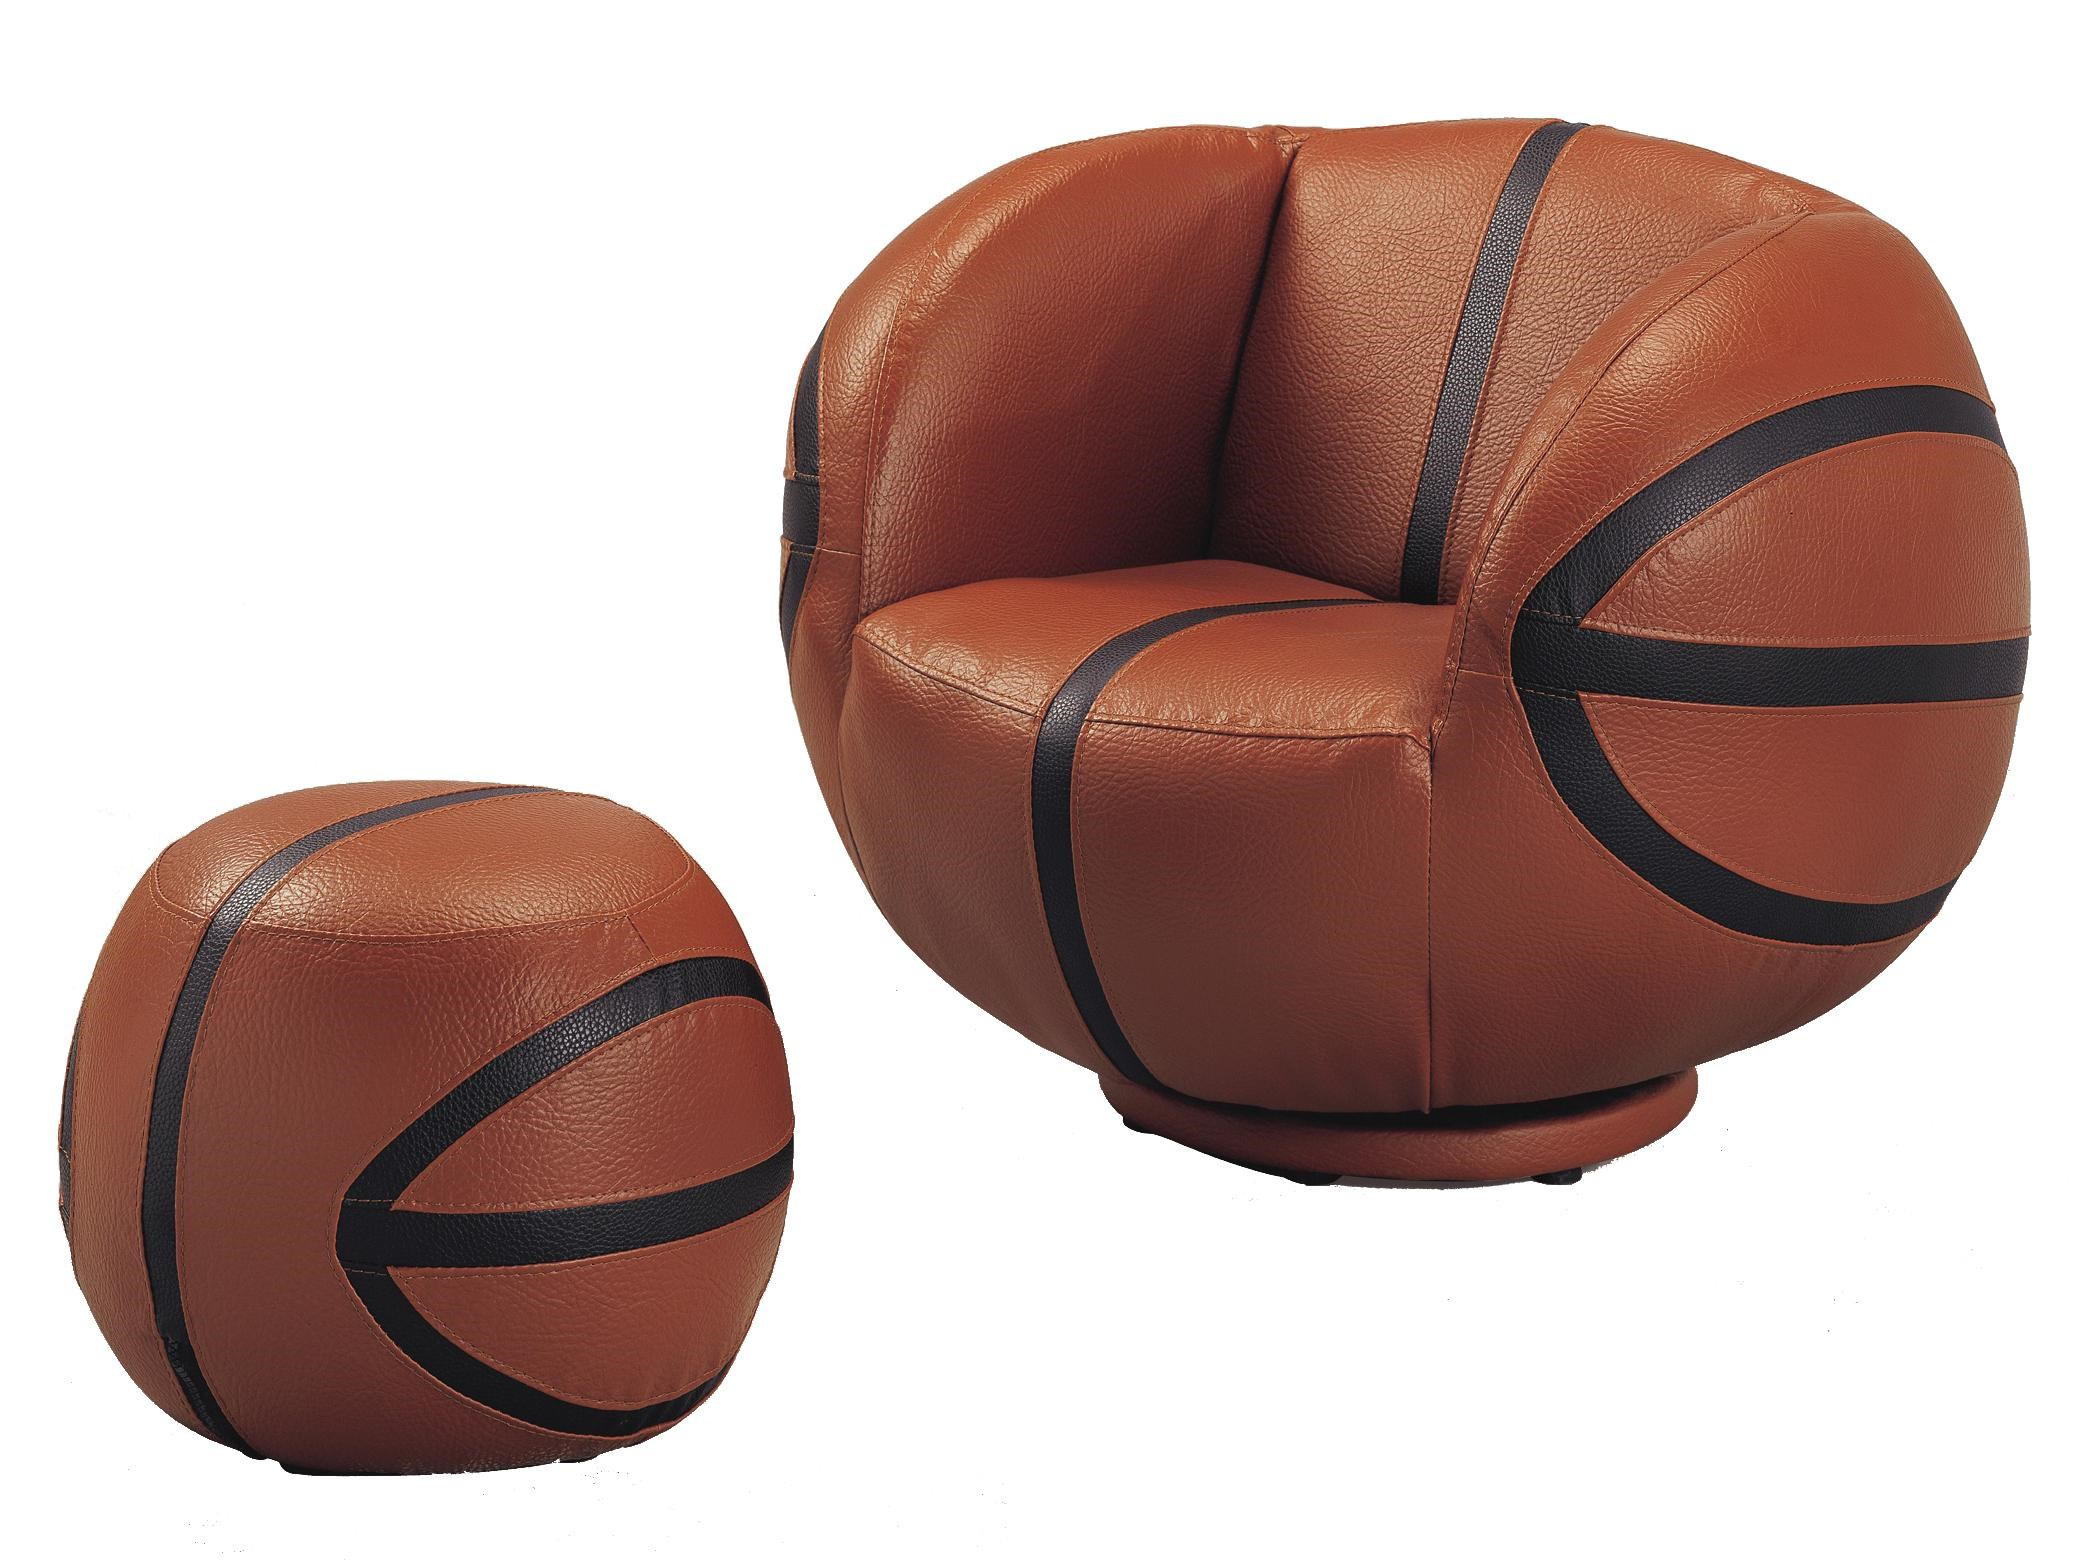 Kids Sport Chairs Basketball Swivel Chair u0026 Ottoman by Crown Mark  sc 1 st  Dunk u0026 Bright Furniture & Crown Mark Kids Sport Chairs 7002 Basketball Swivel Chair u0026 Ottoman ...